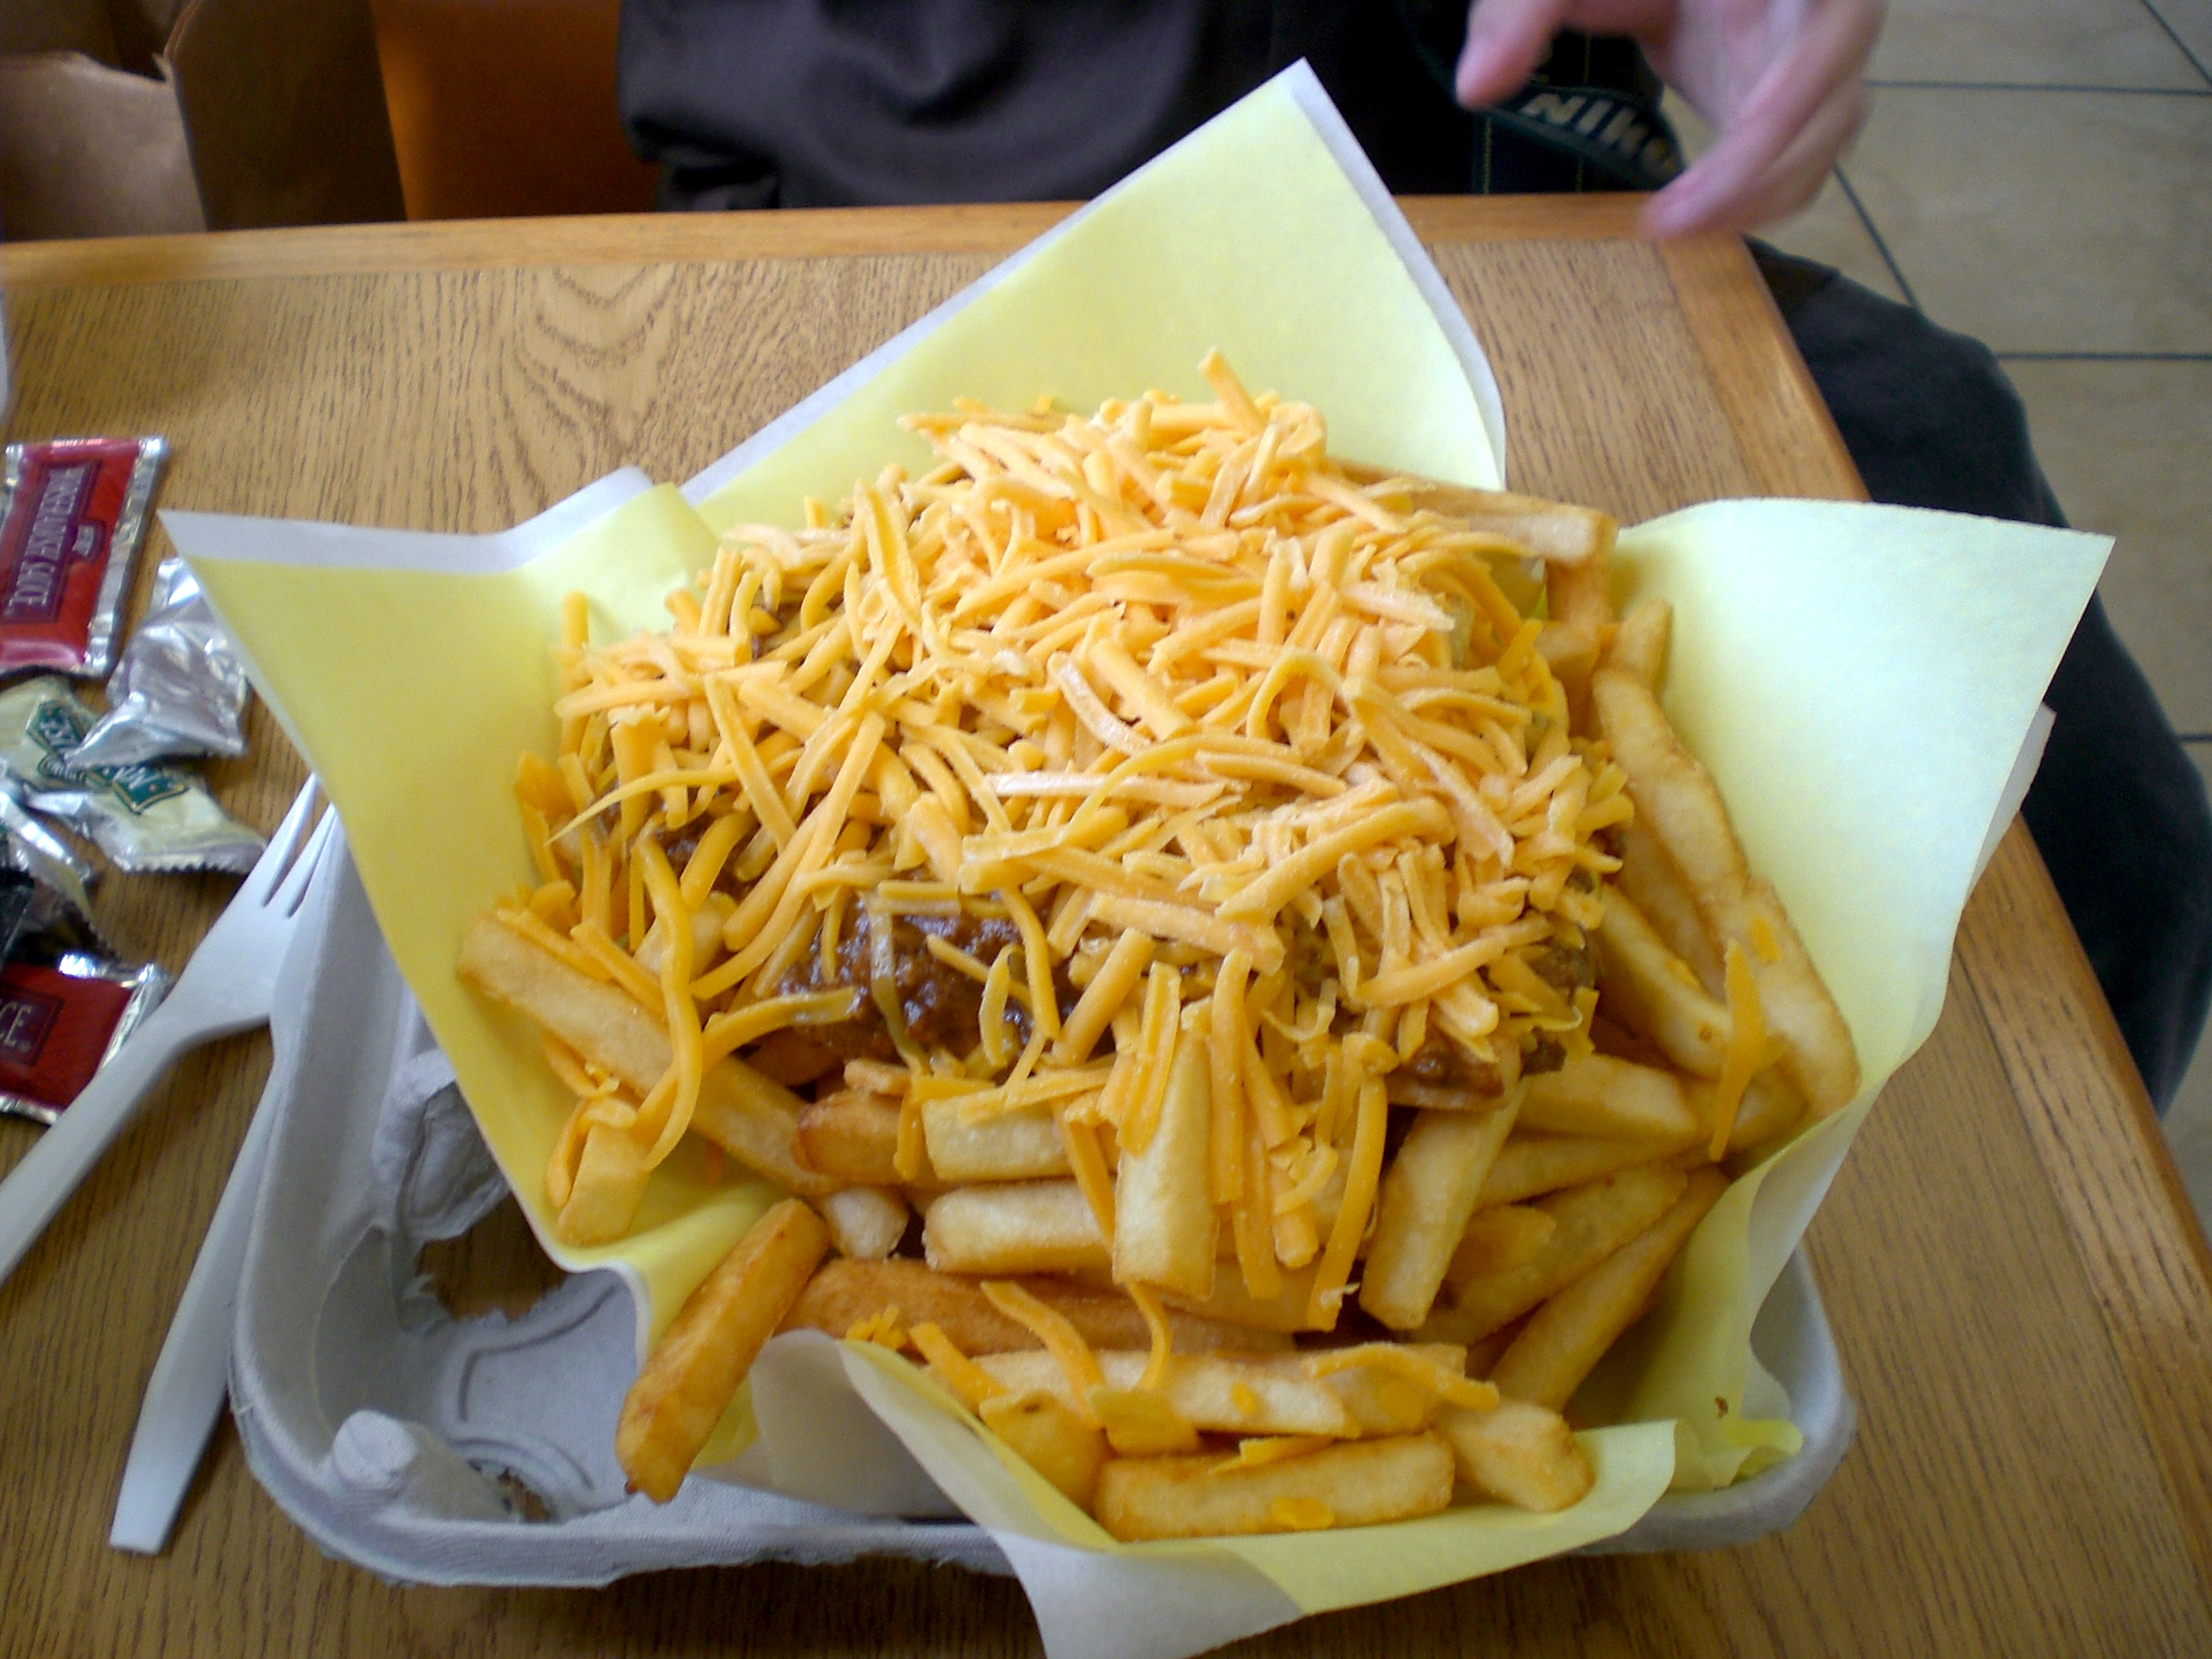 chese fries